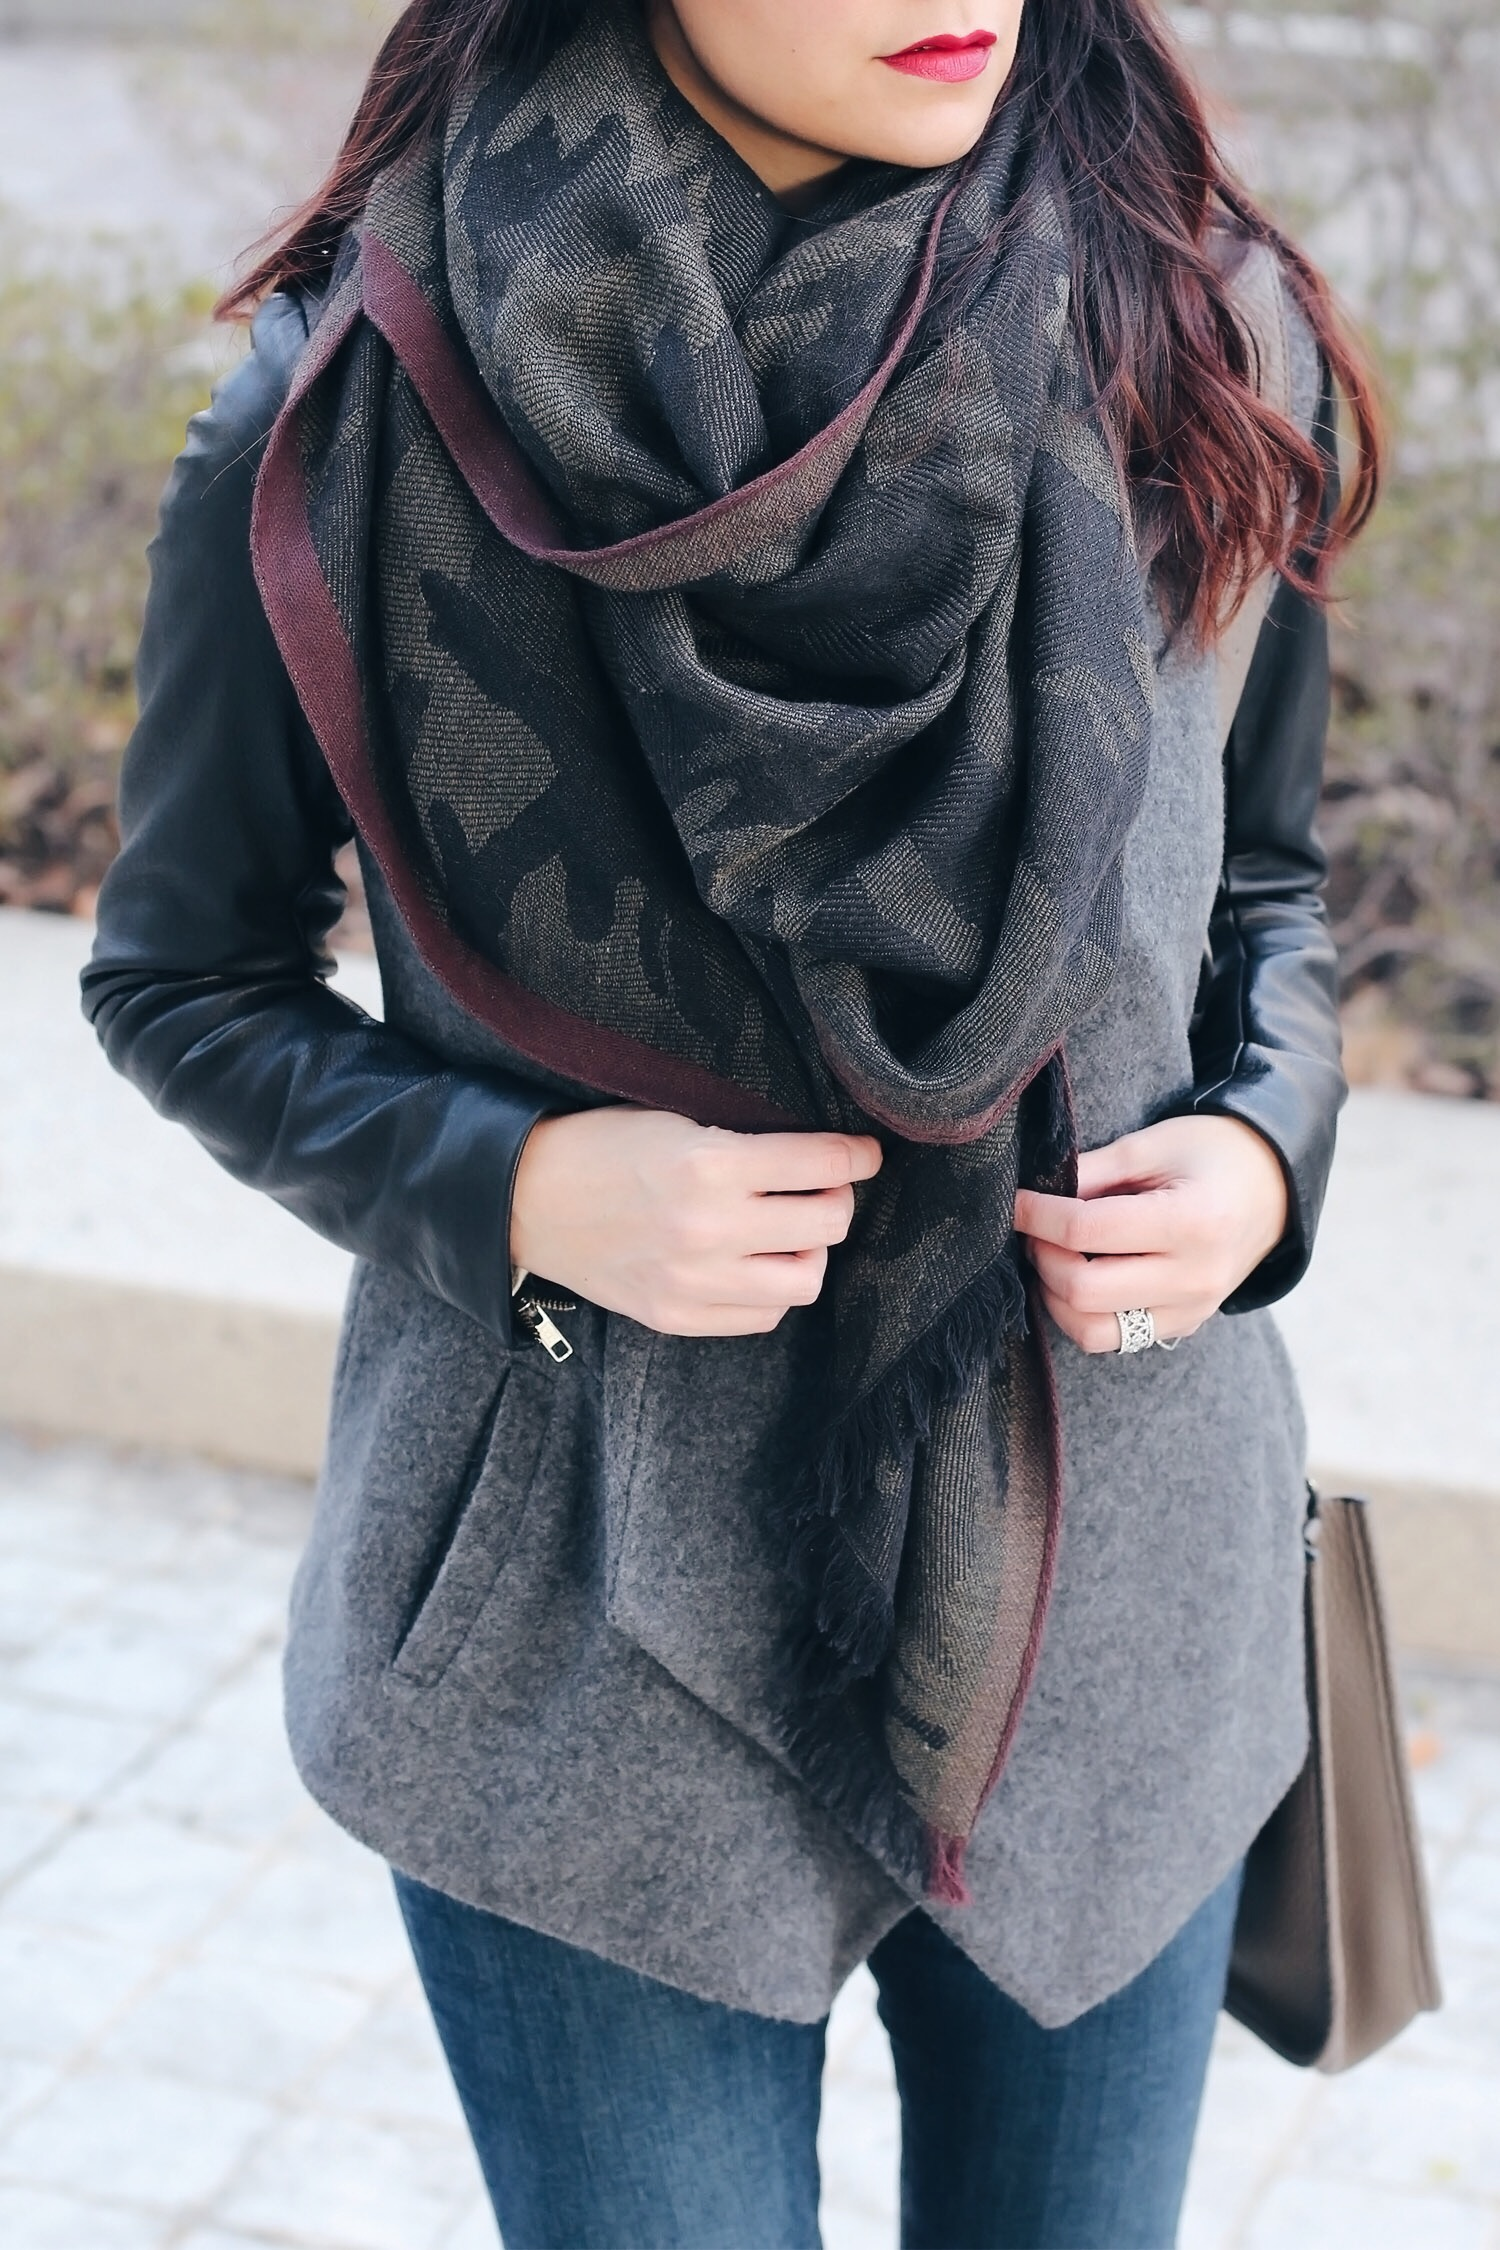 I seriously stalked this leather sleeved Theory wrap jacket for a little over a year when I finally found it. I was cleaning up my watch list and checking links when low and behold this beauty was on sale.